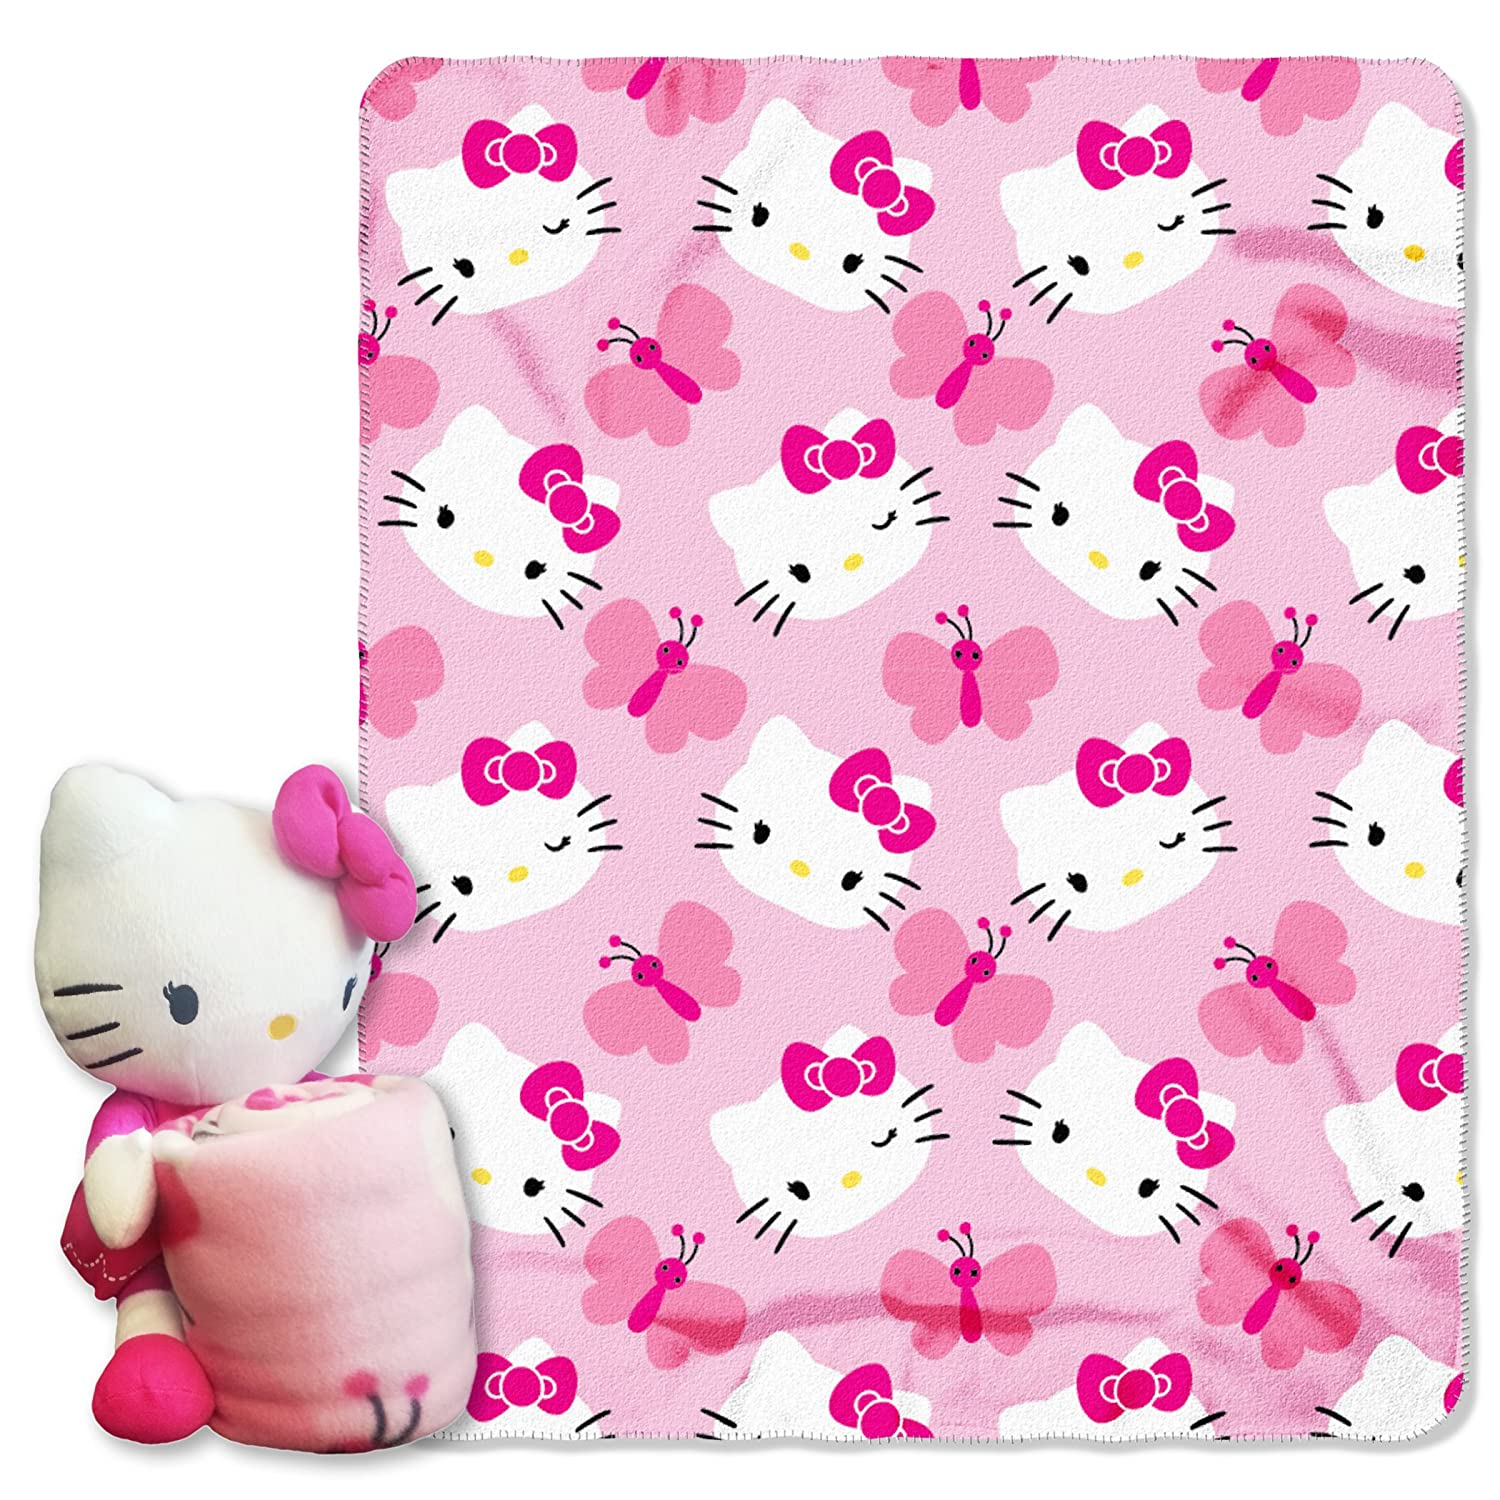 SanrioHello Kitty, Butterfly Fleece Throw with Hugger, 40 by 50-Inch SanrioHello Kitty SAN038000007WMT